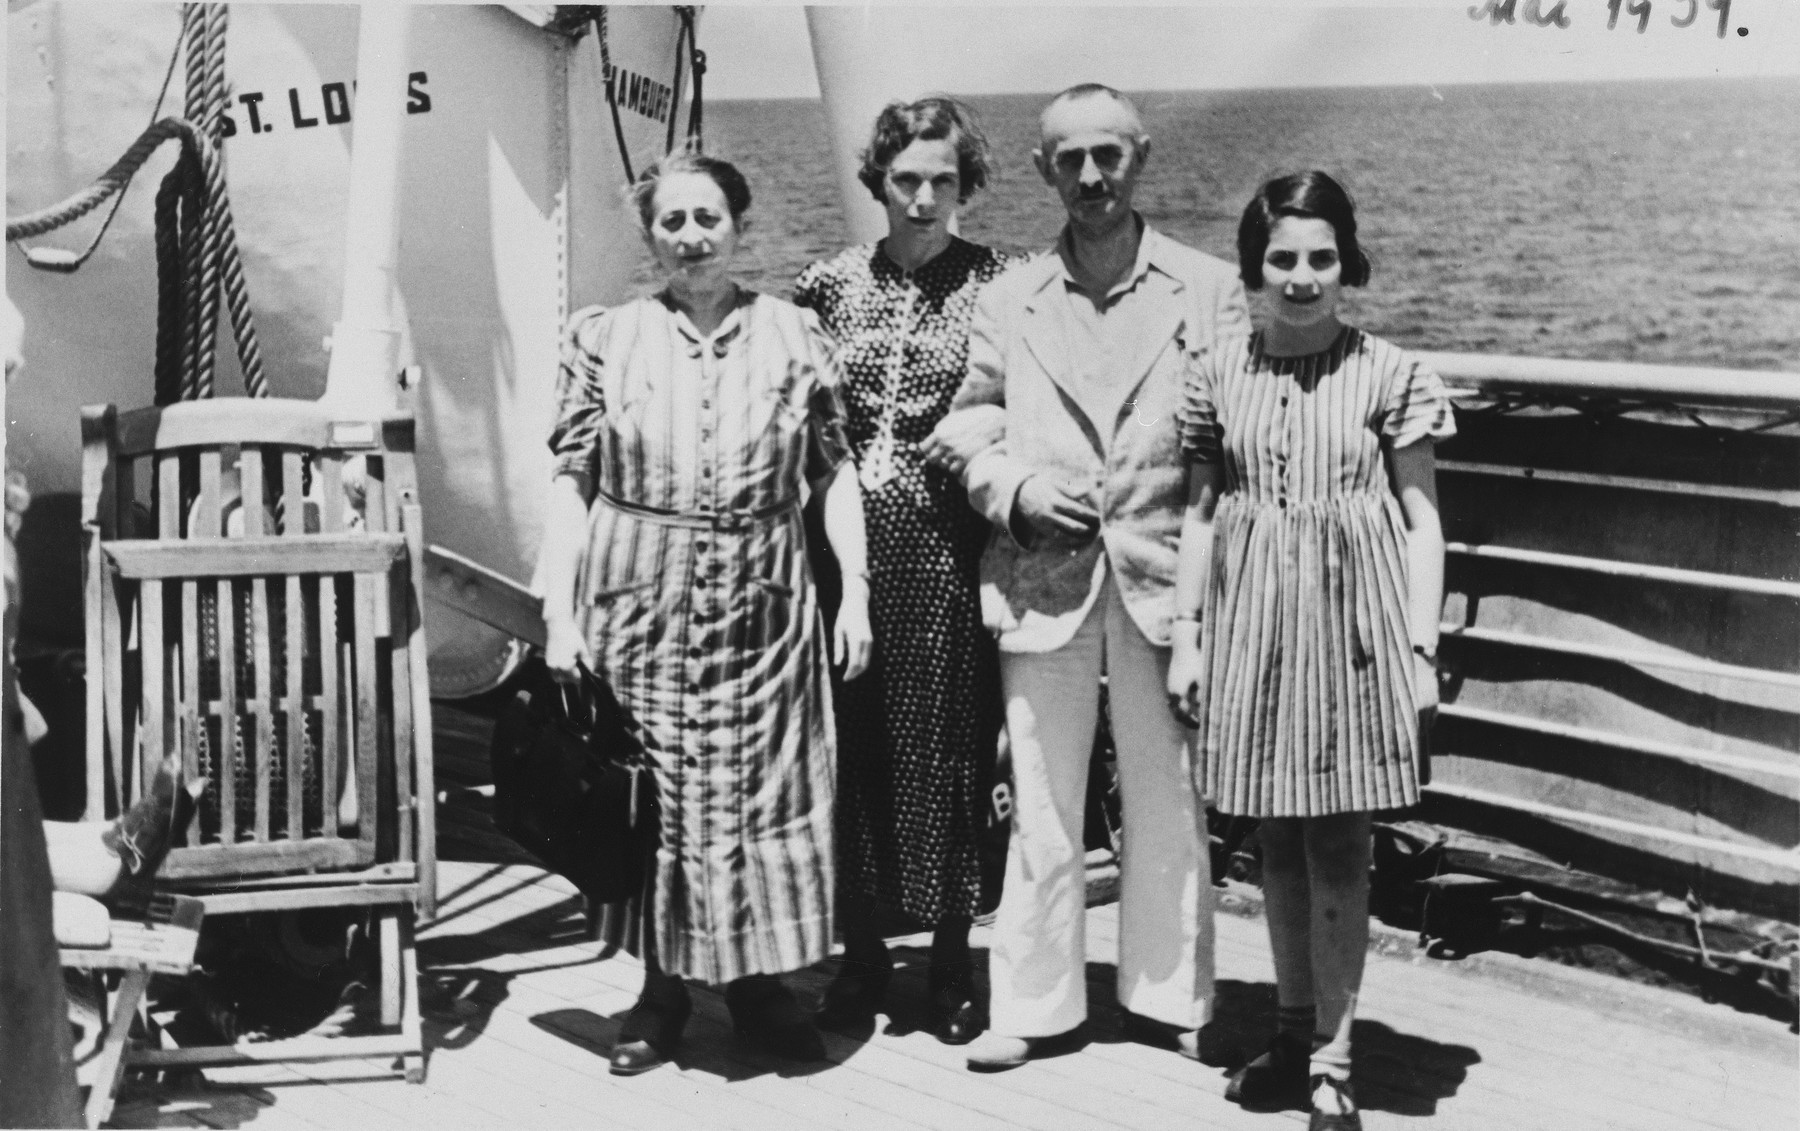 The Arndt family stands on deck of the St. Louis.  Pictured from left to right are Paula Kahnemann, Hertha Arndt, Arthur Arndt, and Lieselotte Arndt.